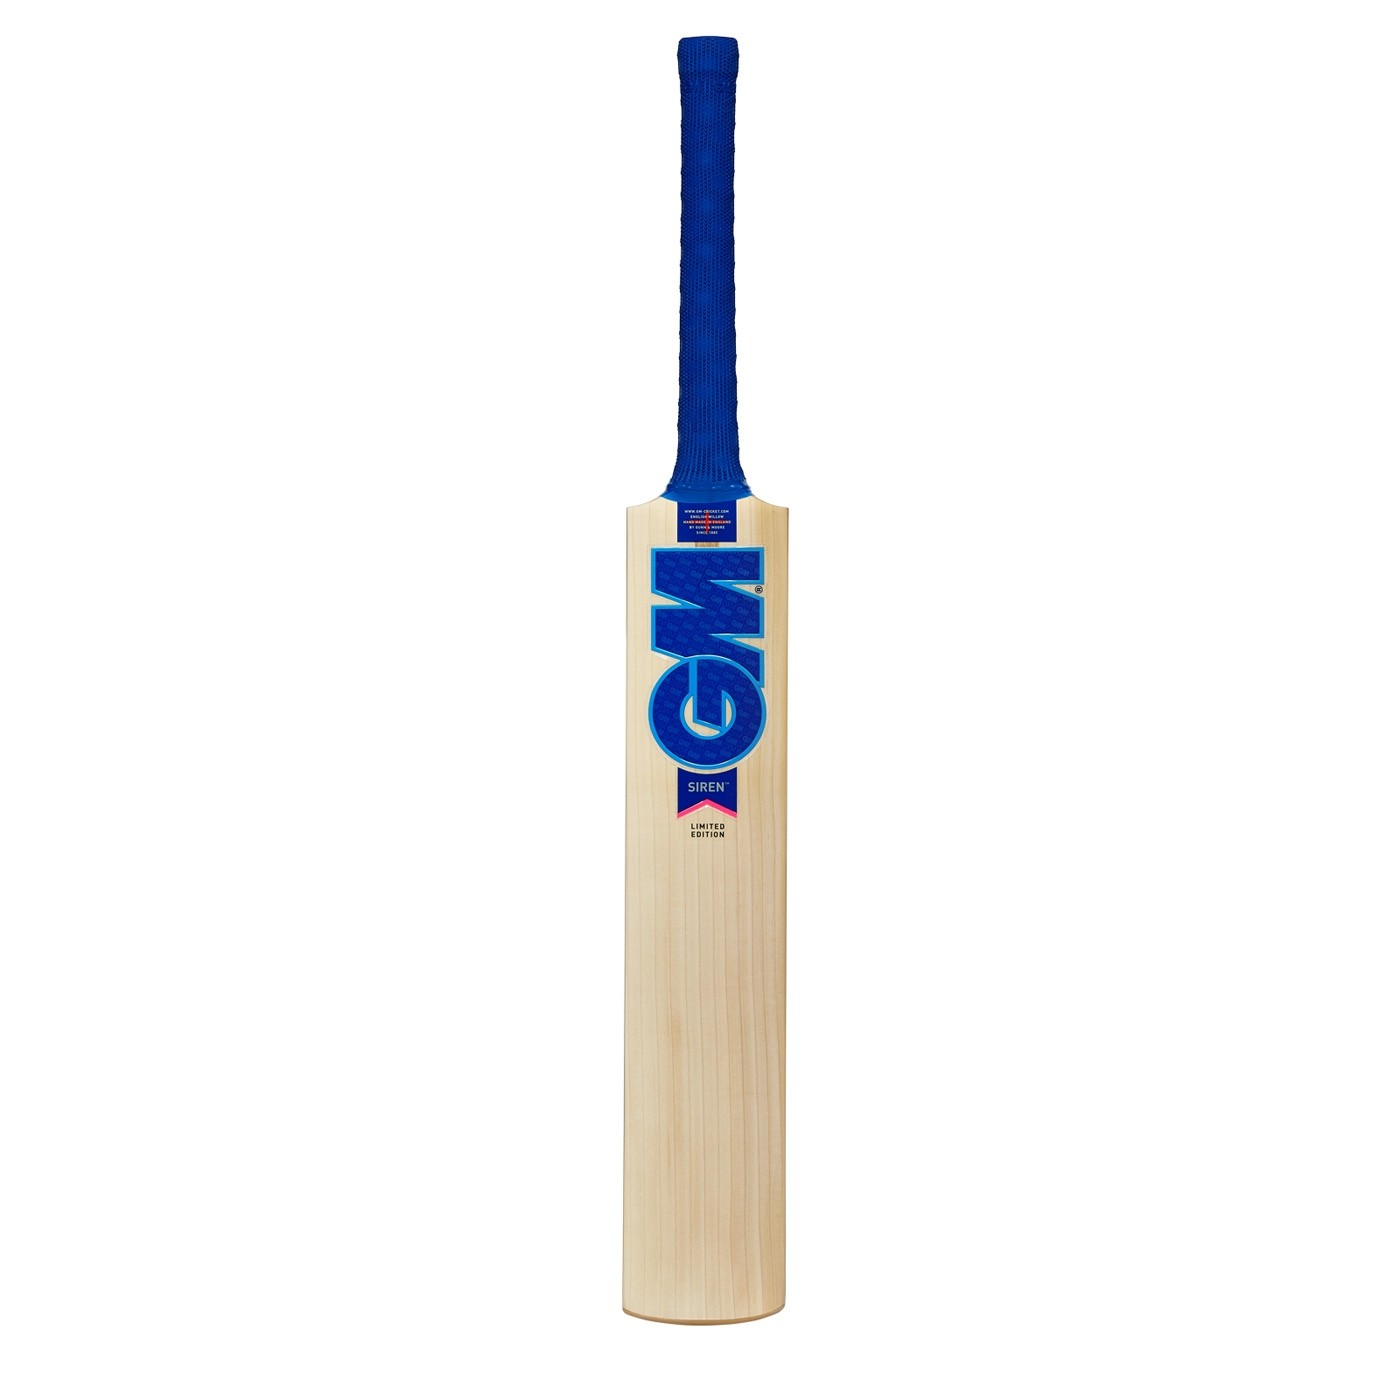 2020 Gunn and Moore Siren DXM Limited Edition Cricket Bat